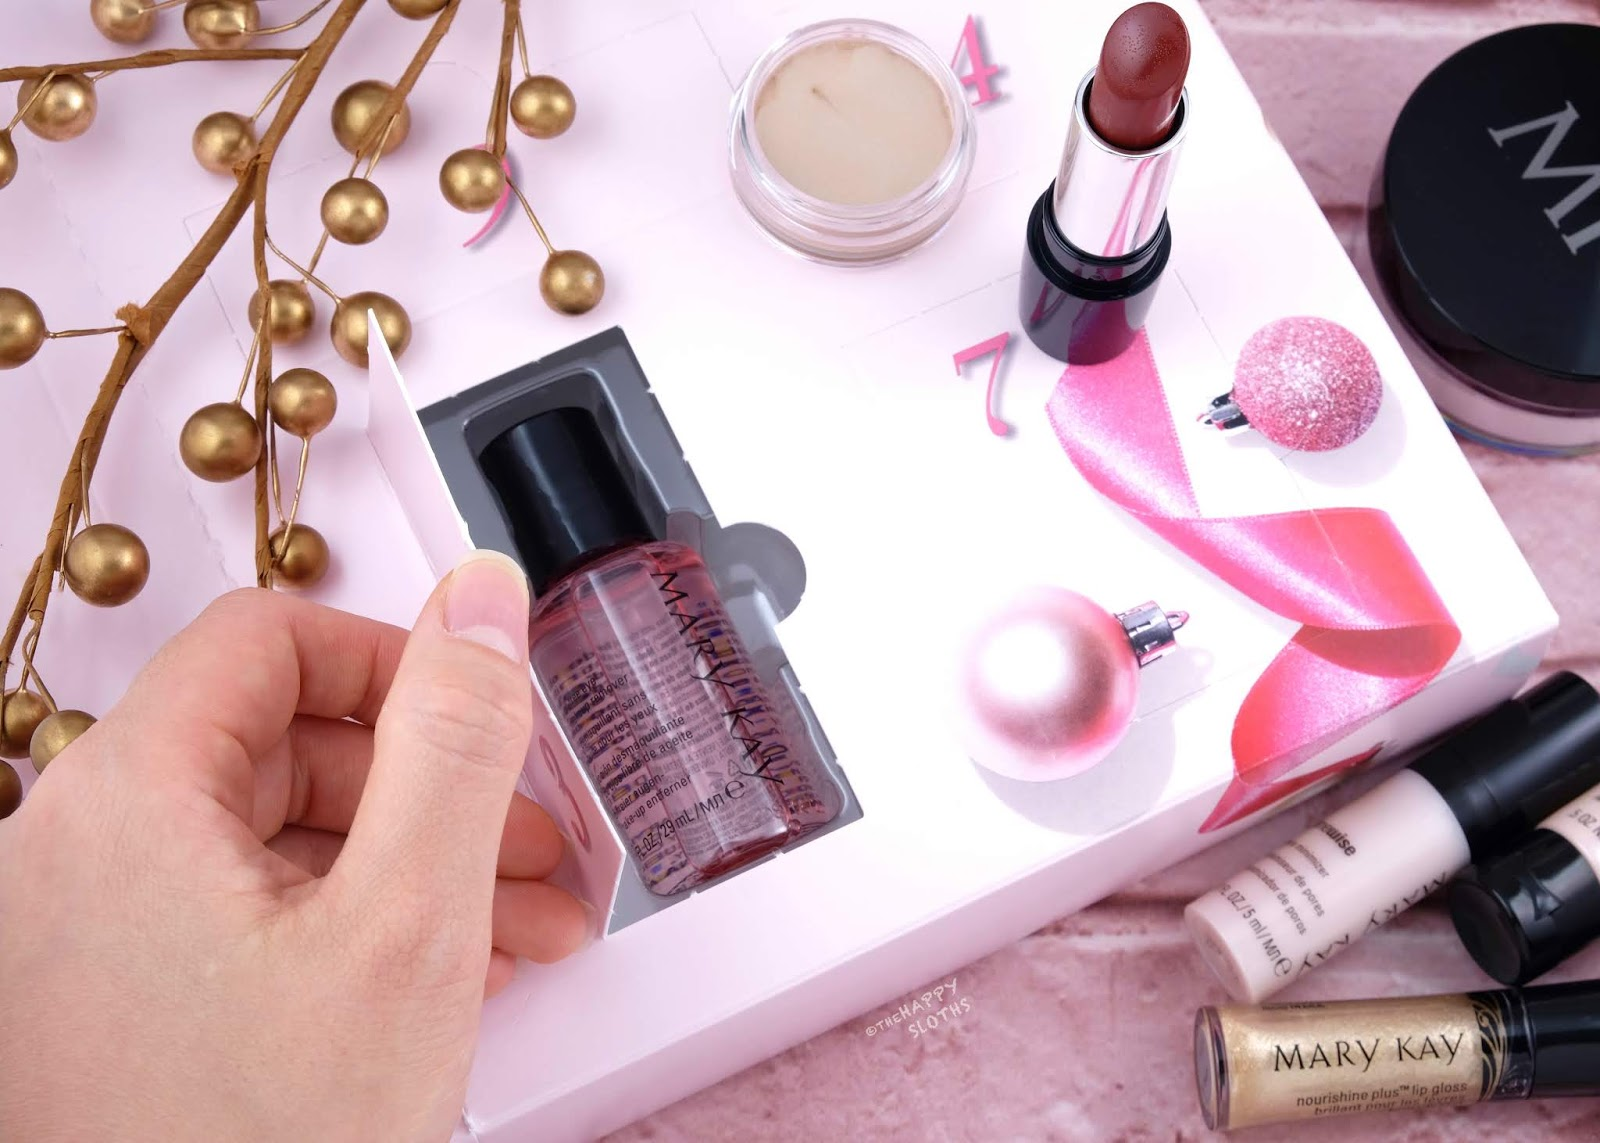 Mary Kay | Holiday 2019 12 Days of Glam Gift Set: Reveal + Spoiler